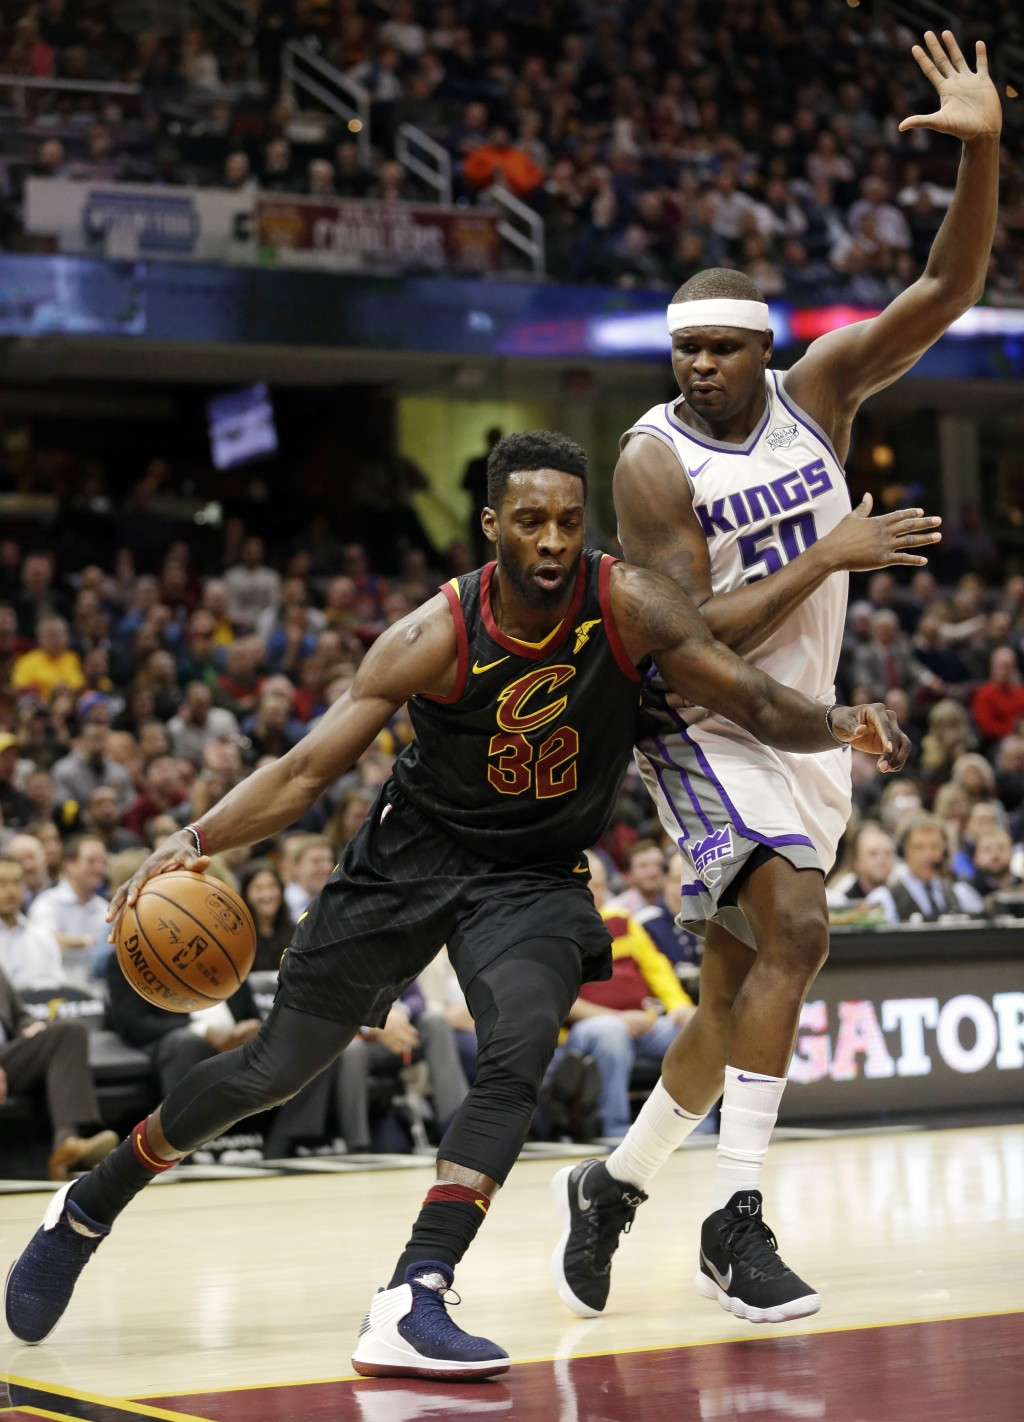 Cleveland Cavaliers' Jeff Green (32) drives against Sacramento Kings' Zach Randolph (50) in the first half of an NBA basketball game, Wednesday, Dec.